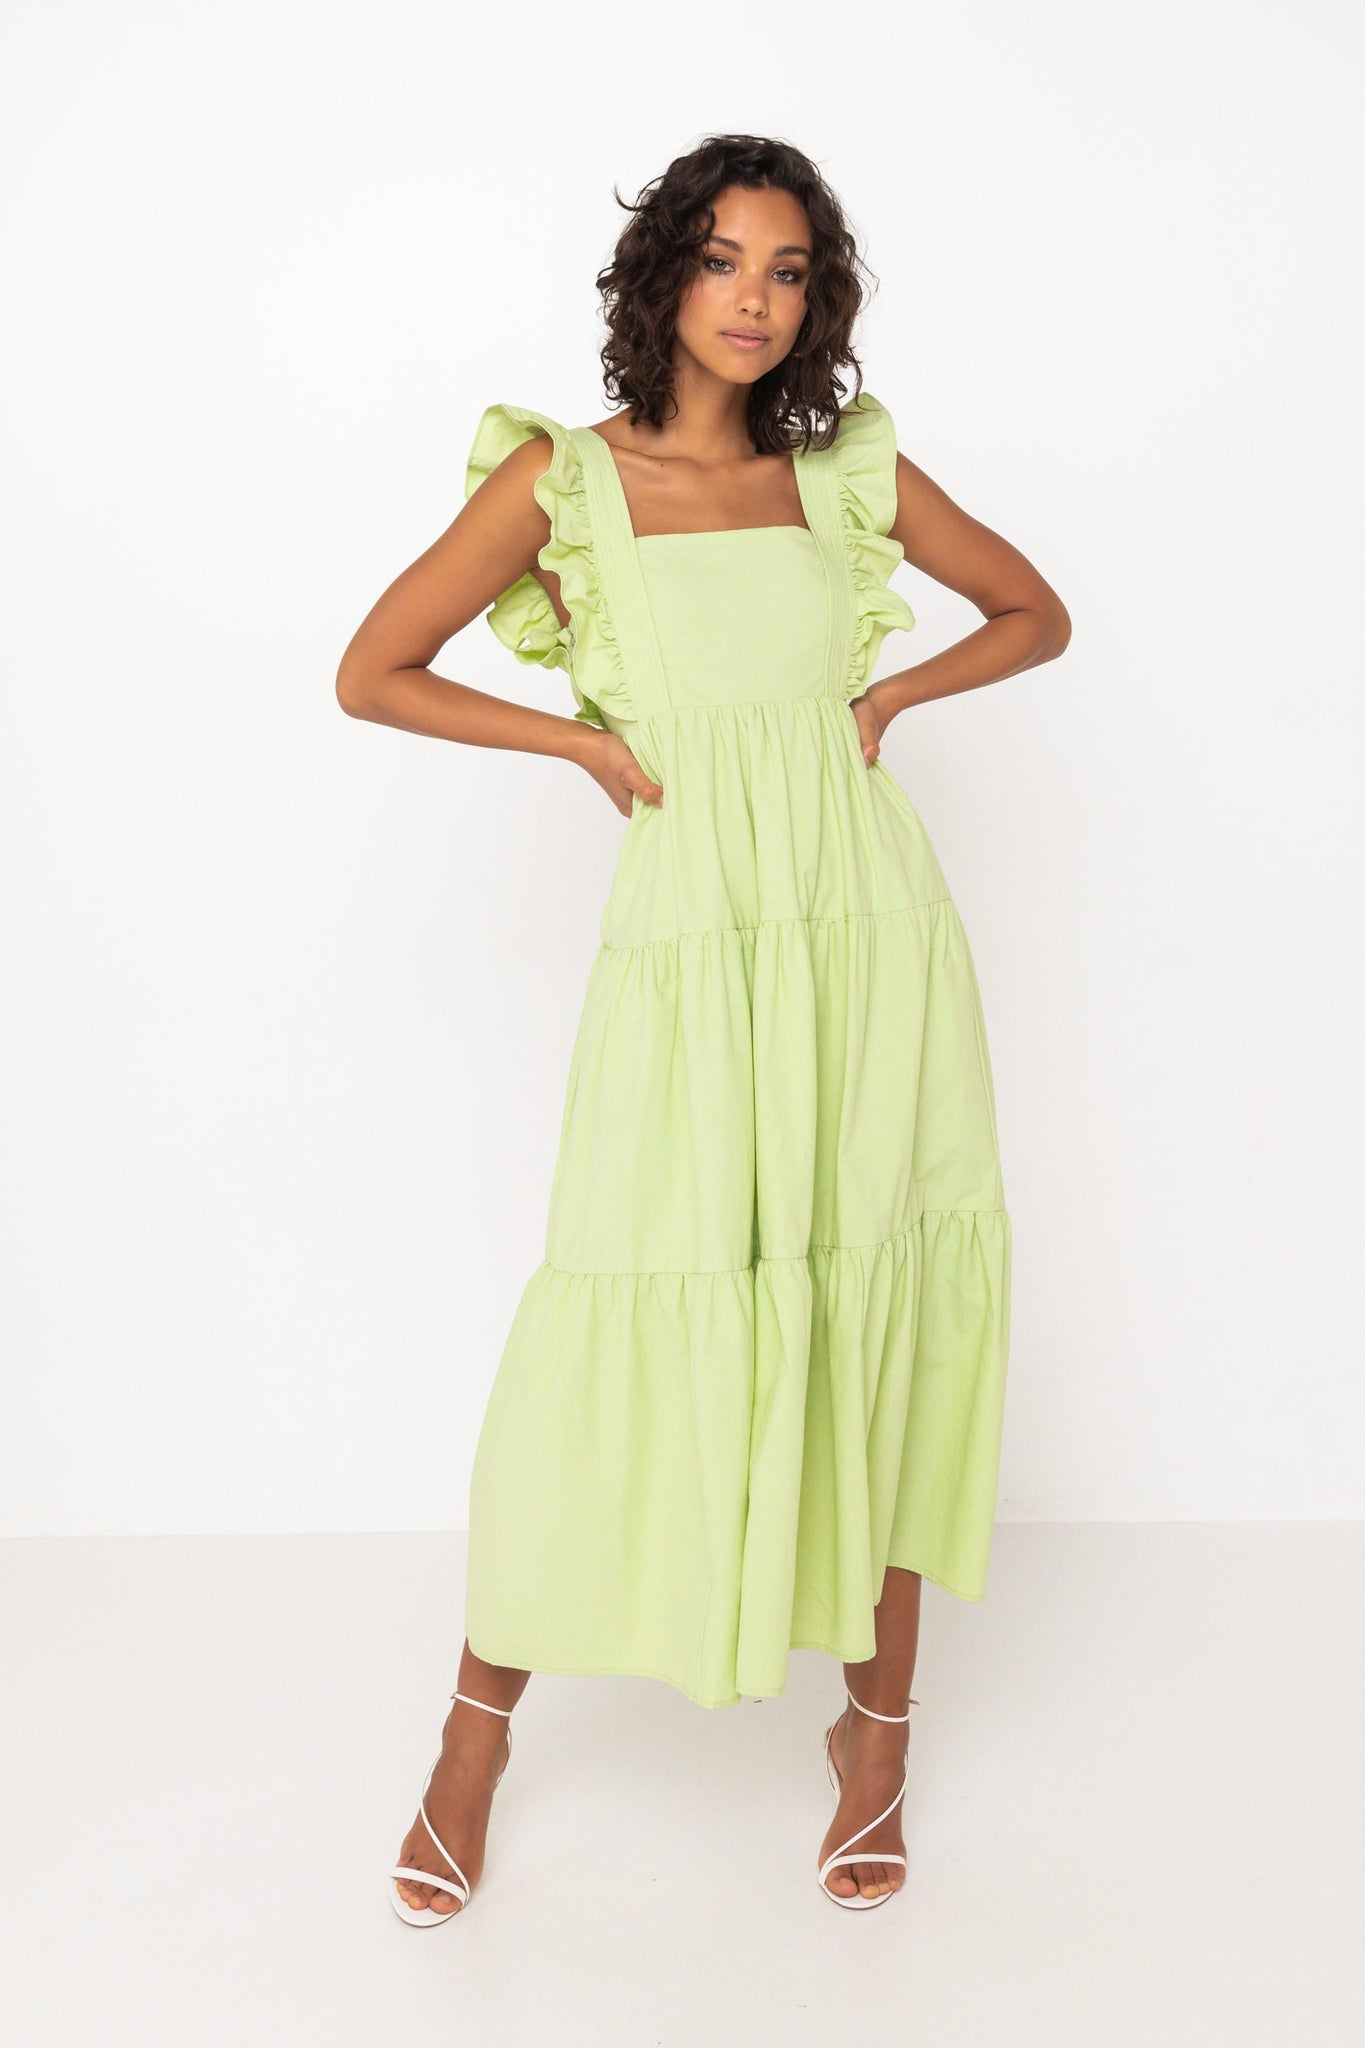 The Seahaze Maxi Dress